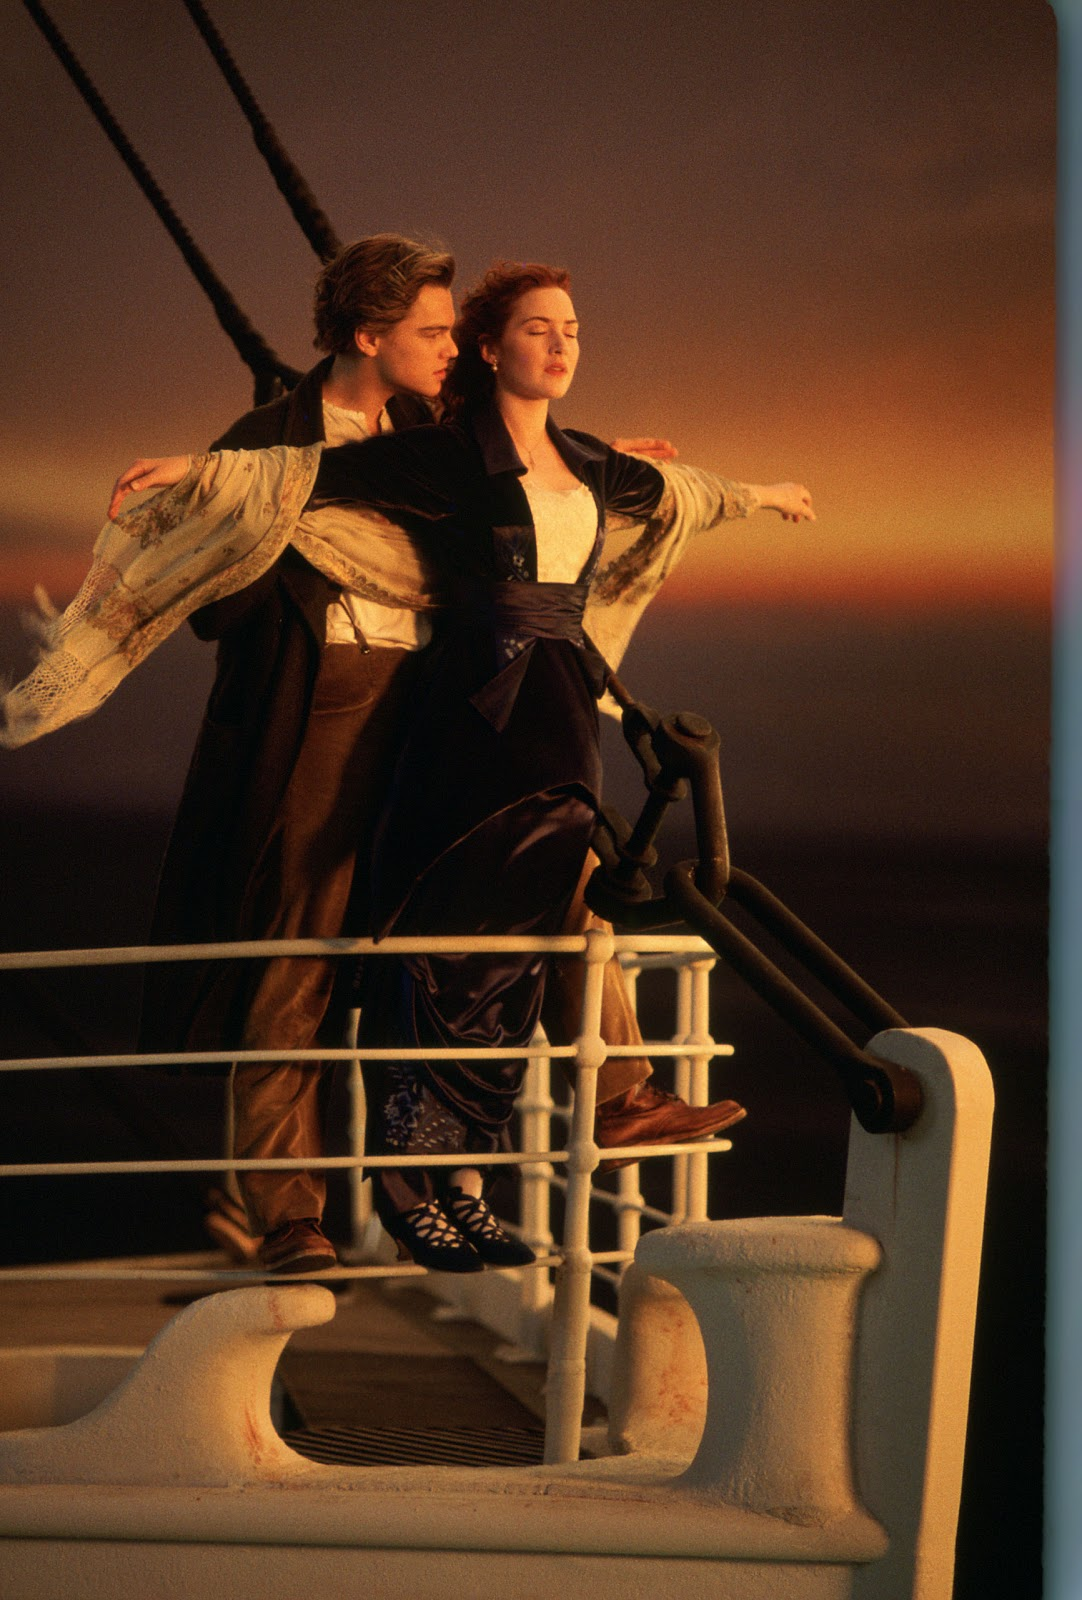 Kate Winslet Titanic Painting Scene Leo dicaprio and kate winslet